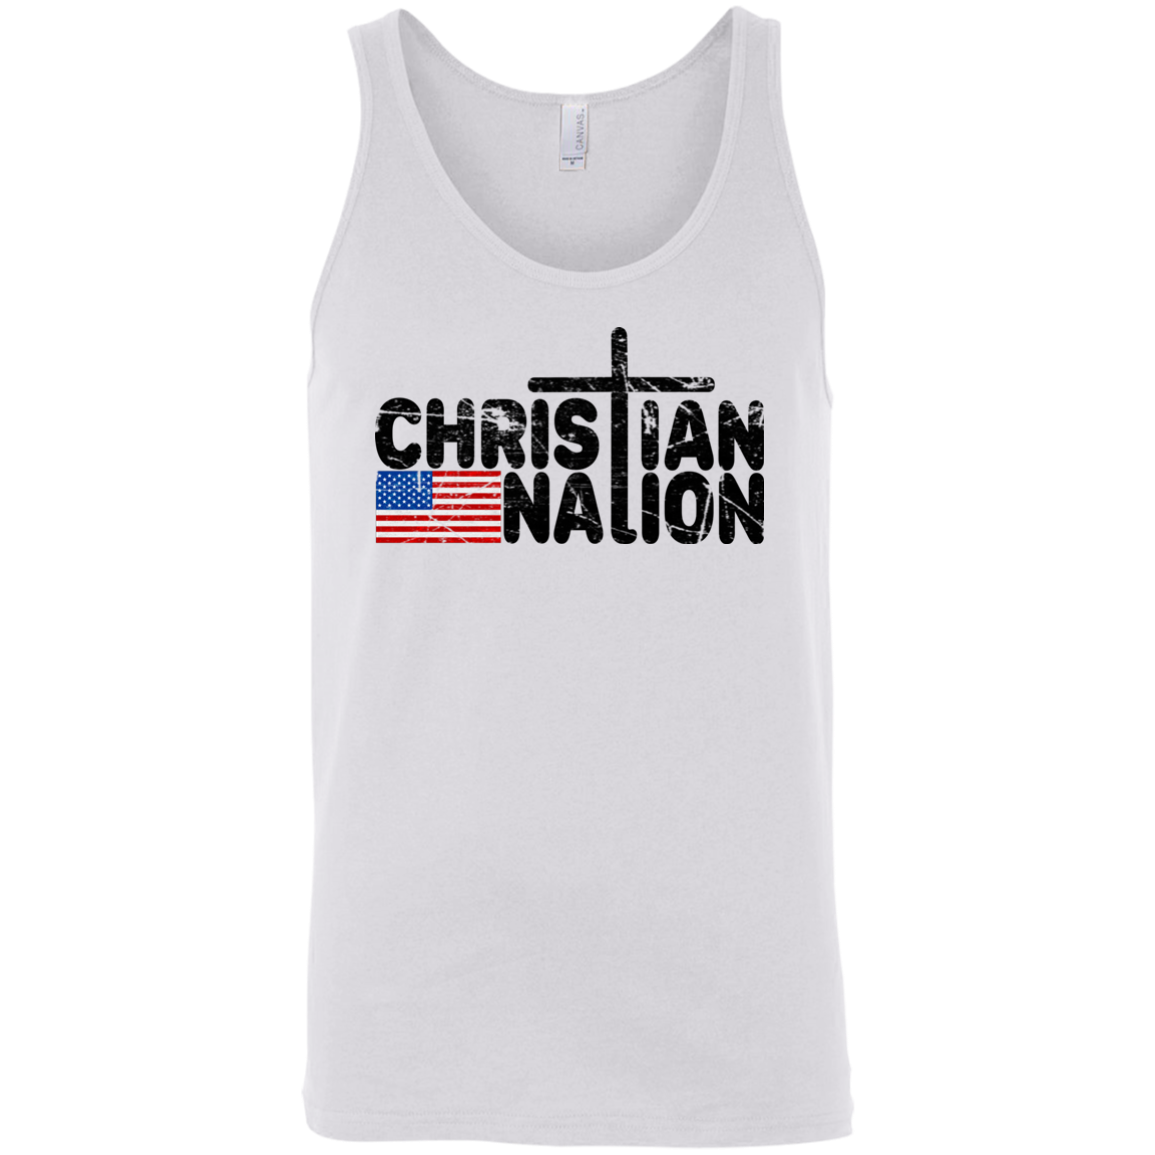 Christian Nation Black Text Tank Tops   Flag With Cross on Back XS 2XL